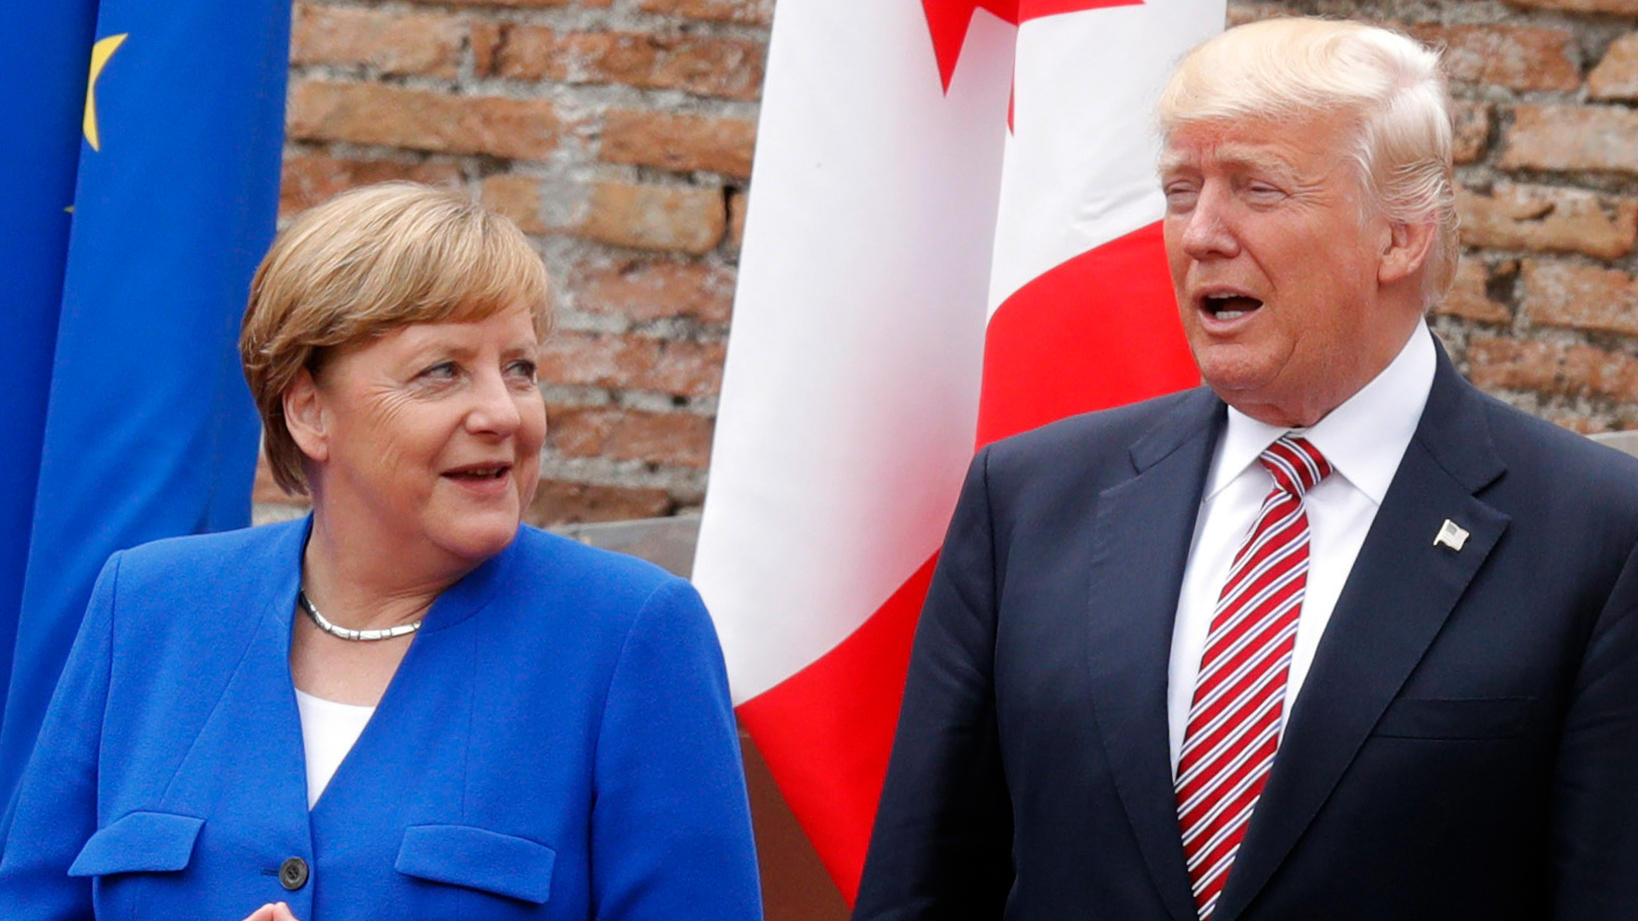 Trump rips Germany in early morning tweet